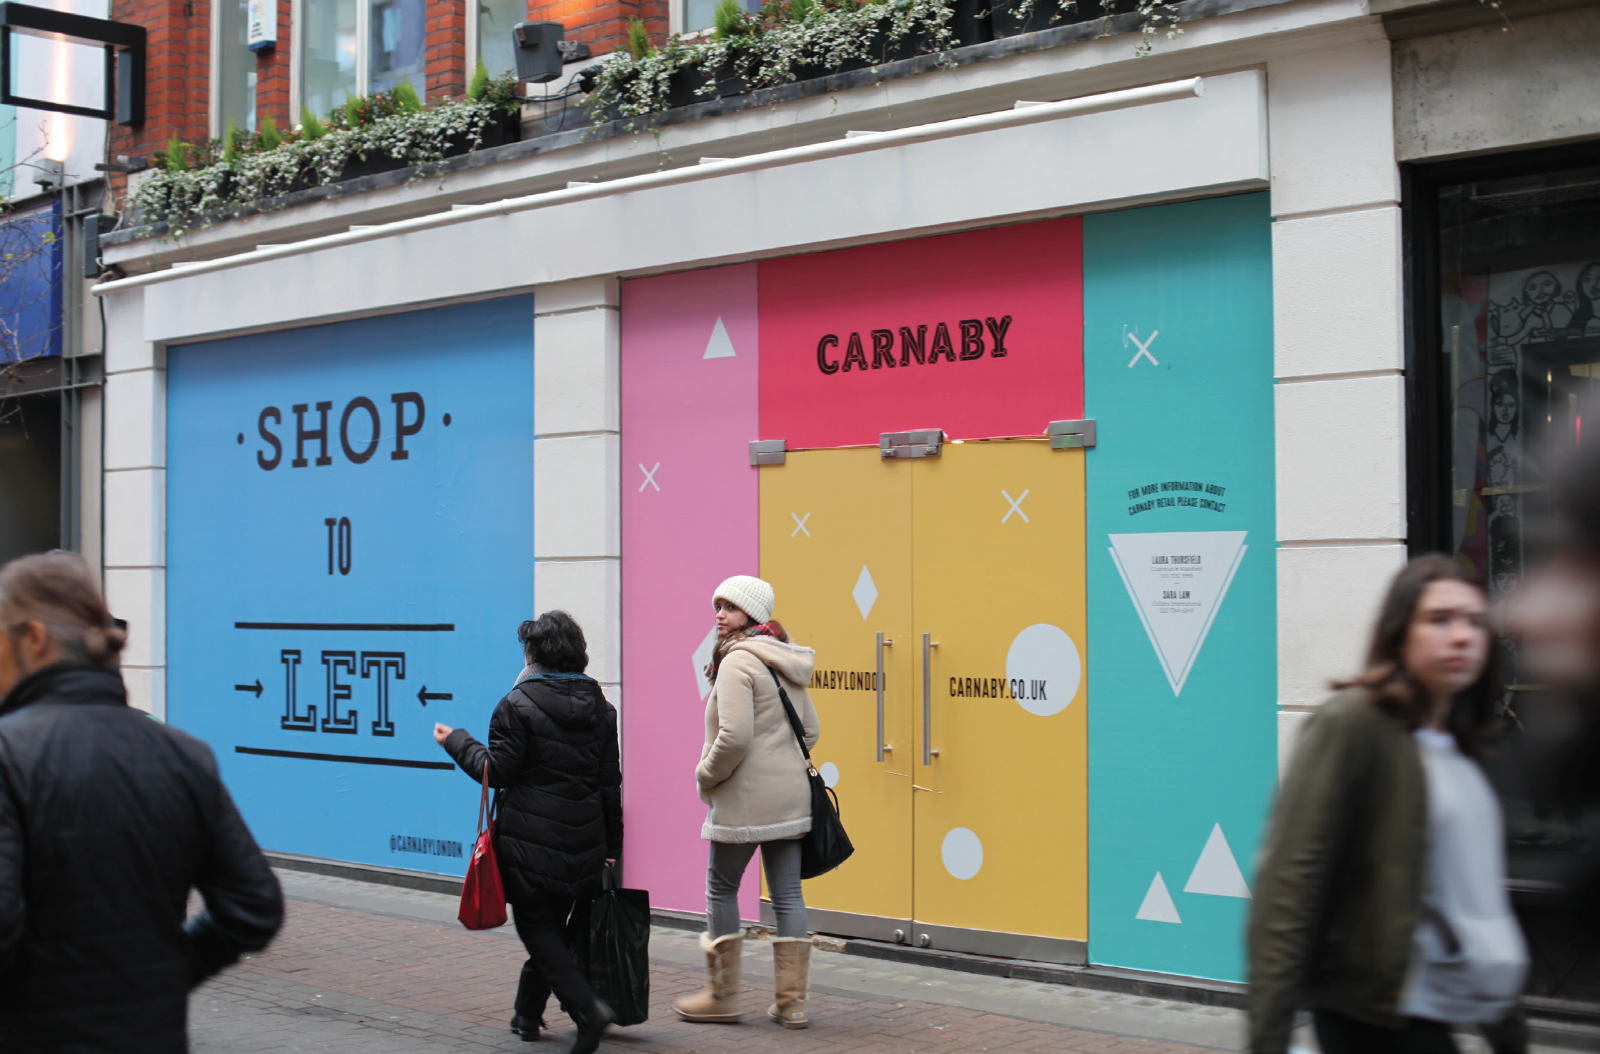 Commercial Property for Rent in Soho - UNDER OFFER, 3 Carnaby Street ... 0b3d51941f7